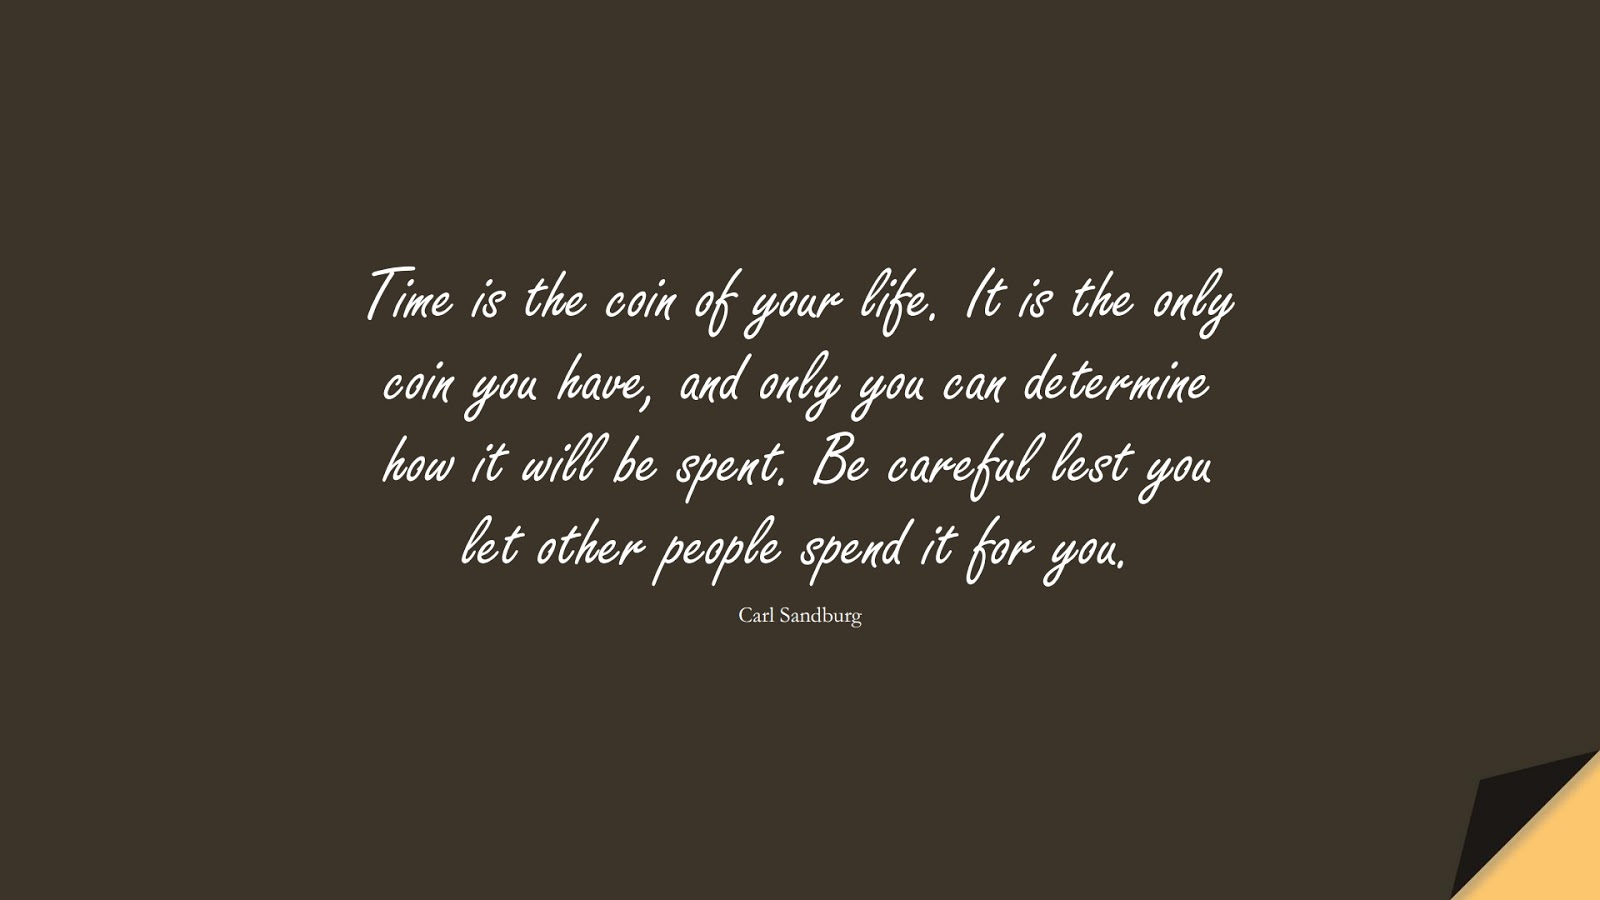 Time is the coin of your life. It is the only coin you have, and only you can determine how it will be spent. Be careful lest you let other people spend it for you. (Carl Sandburg);  #MoneyQuotes